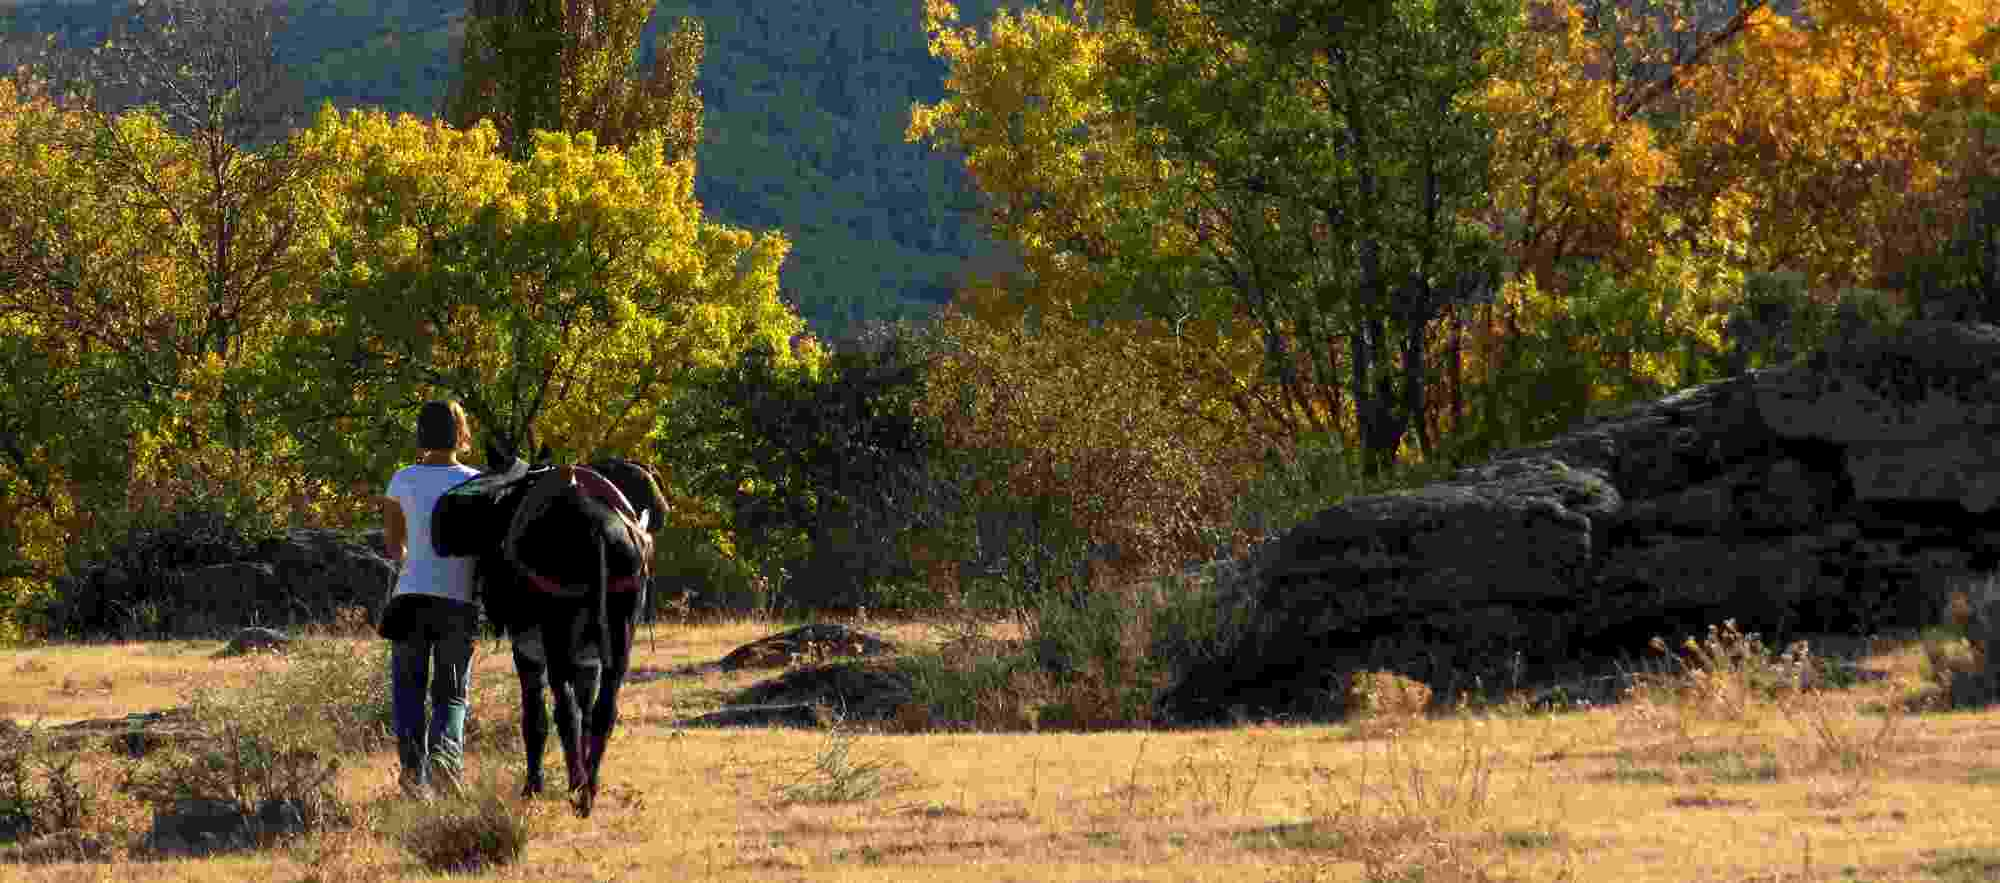 Tranquil walk with a donkey in Segovia, Spain